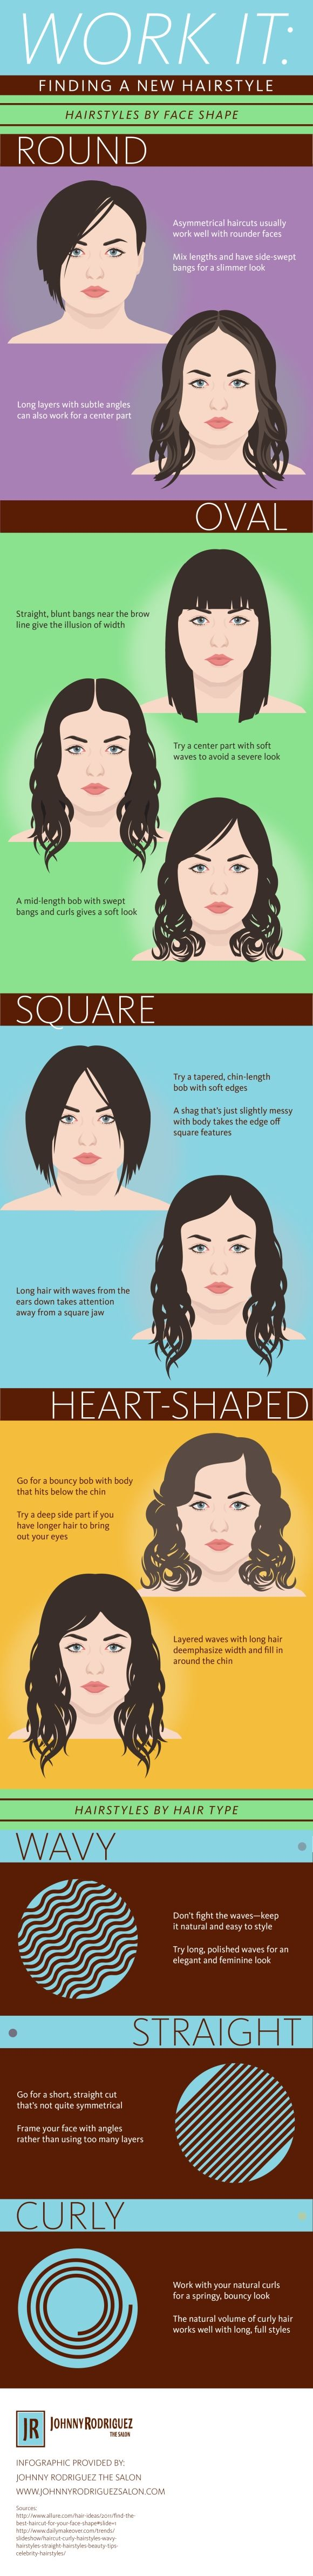 Infographic: How To Choose The Right Hairstyle For Your Face Shape And Hair Type - DesignTAXI.com